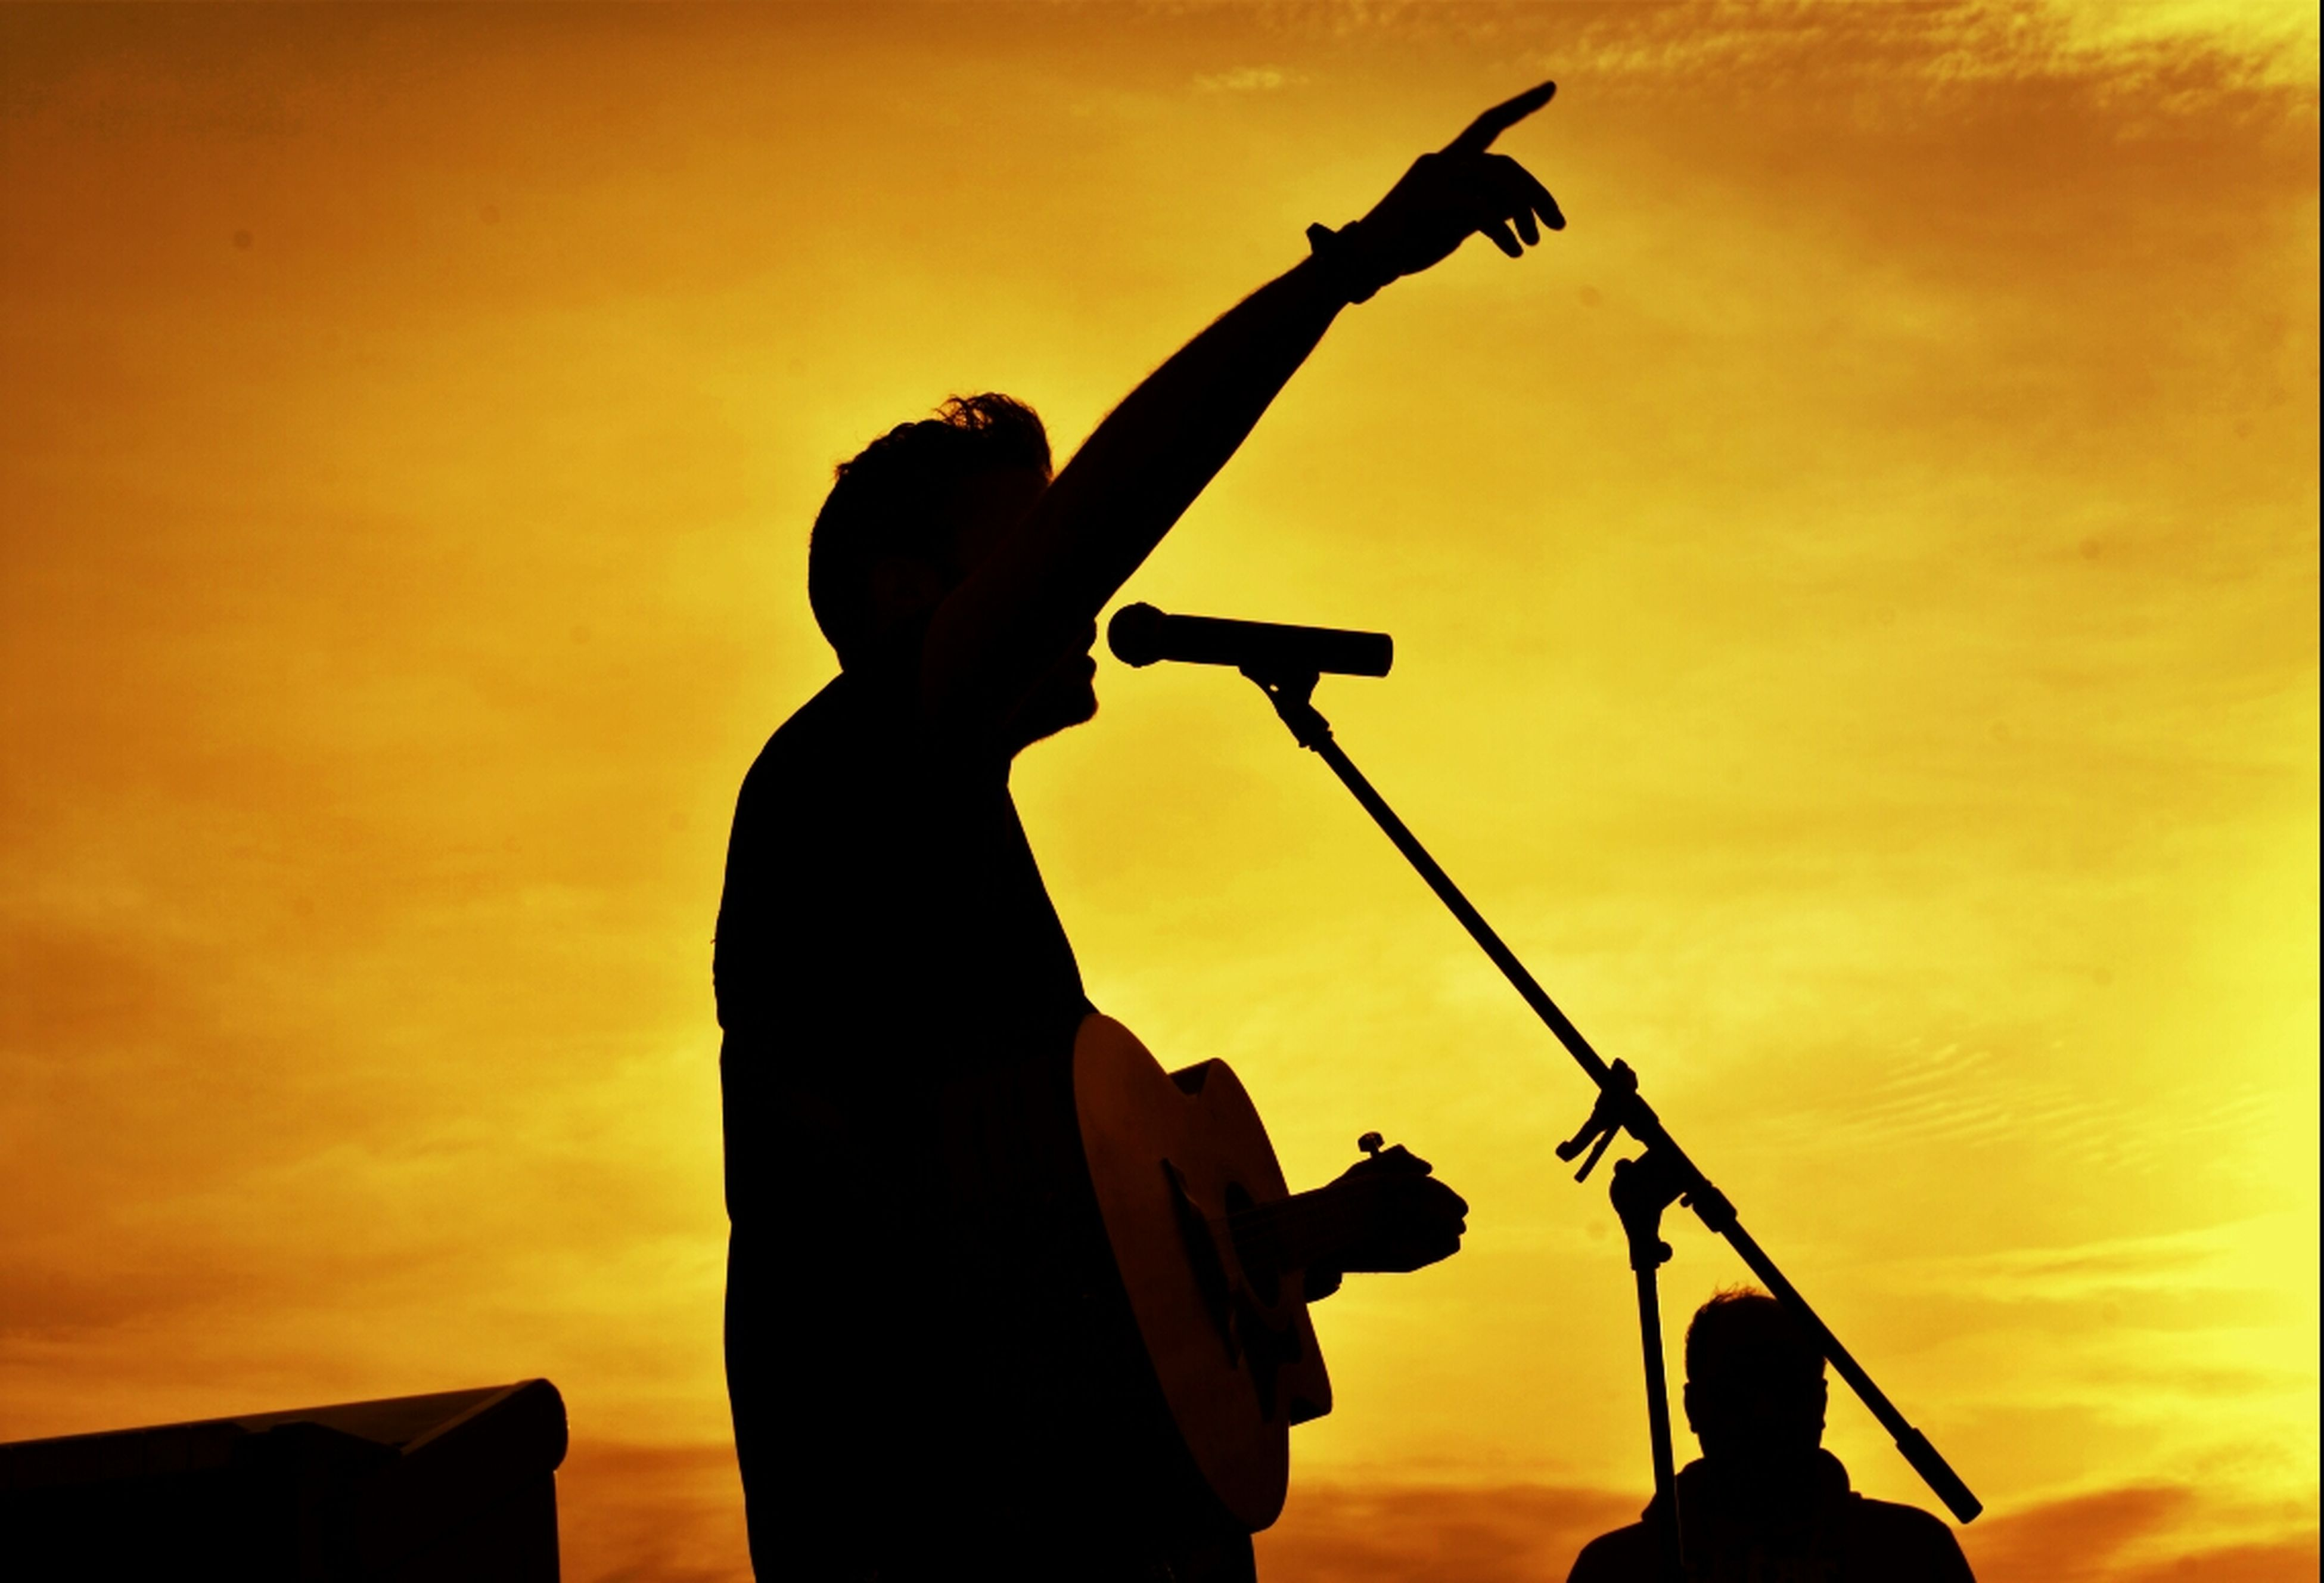 silhouette, sunset, men, lifestyles, leisure activity, low angle view, technology, holding, photography themes, orange color, sky, musical instrument, standing, photographing, music, arts culture and entertainment, camera - photographic equipment, performance